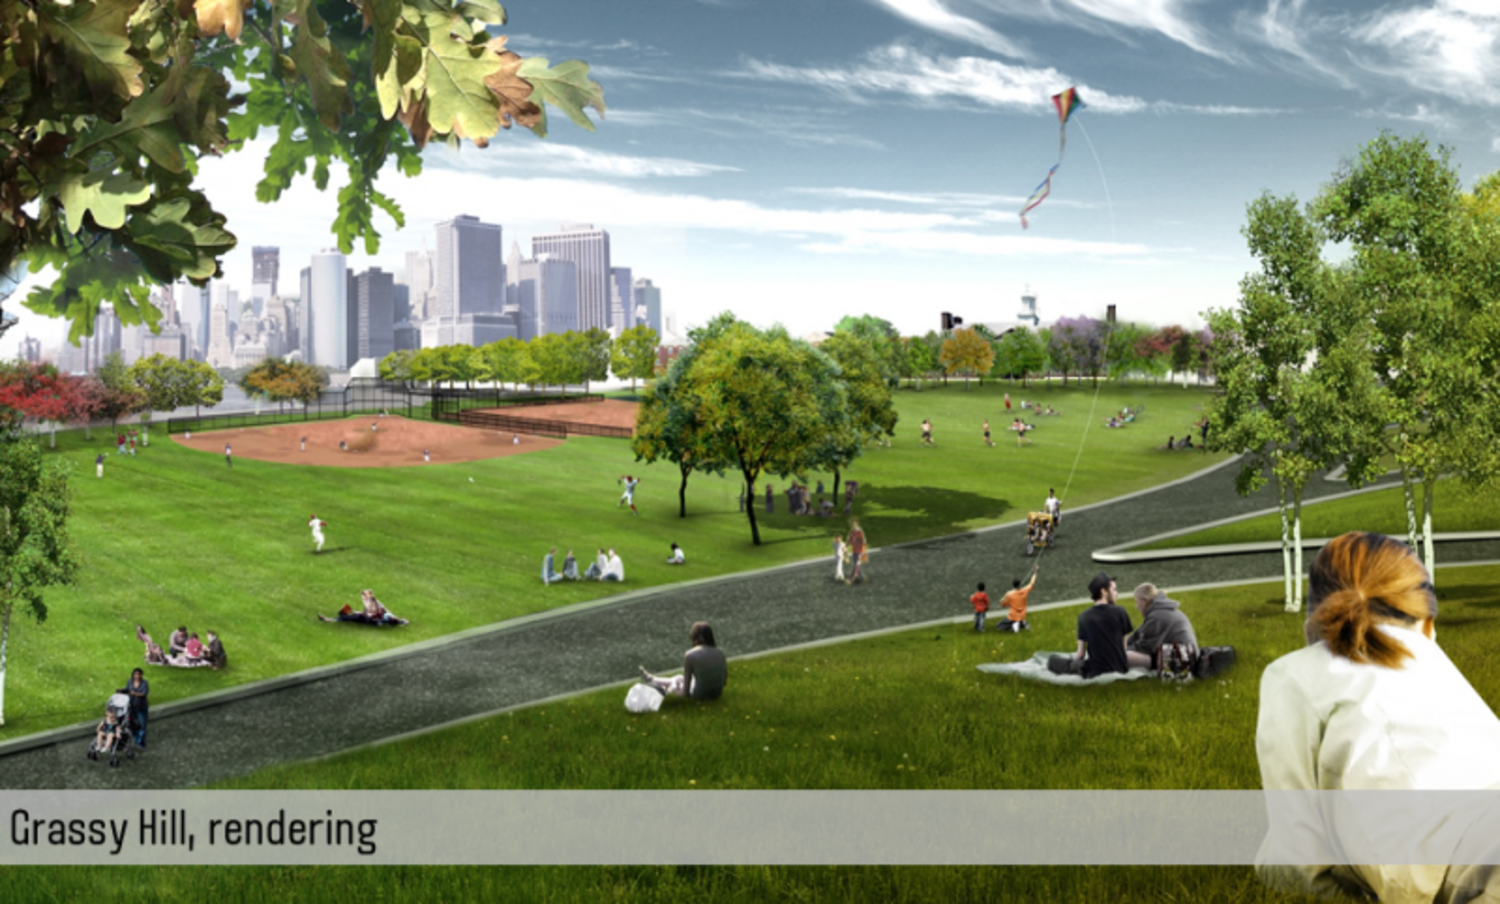 Rendering of Grassy Hill